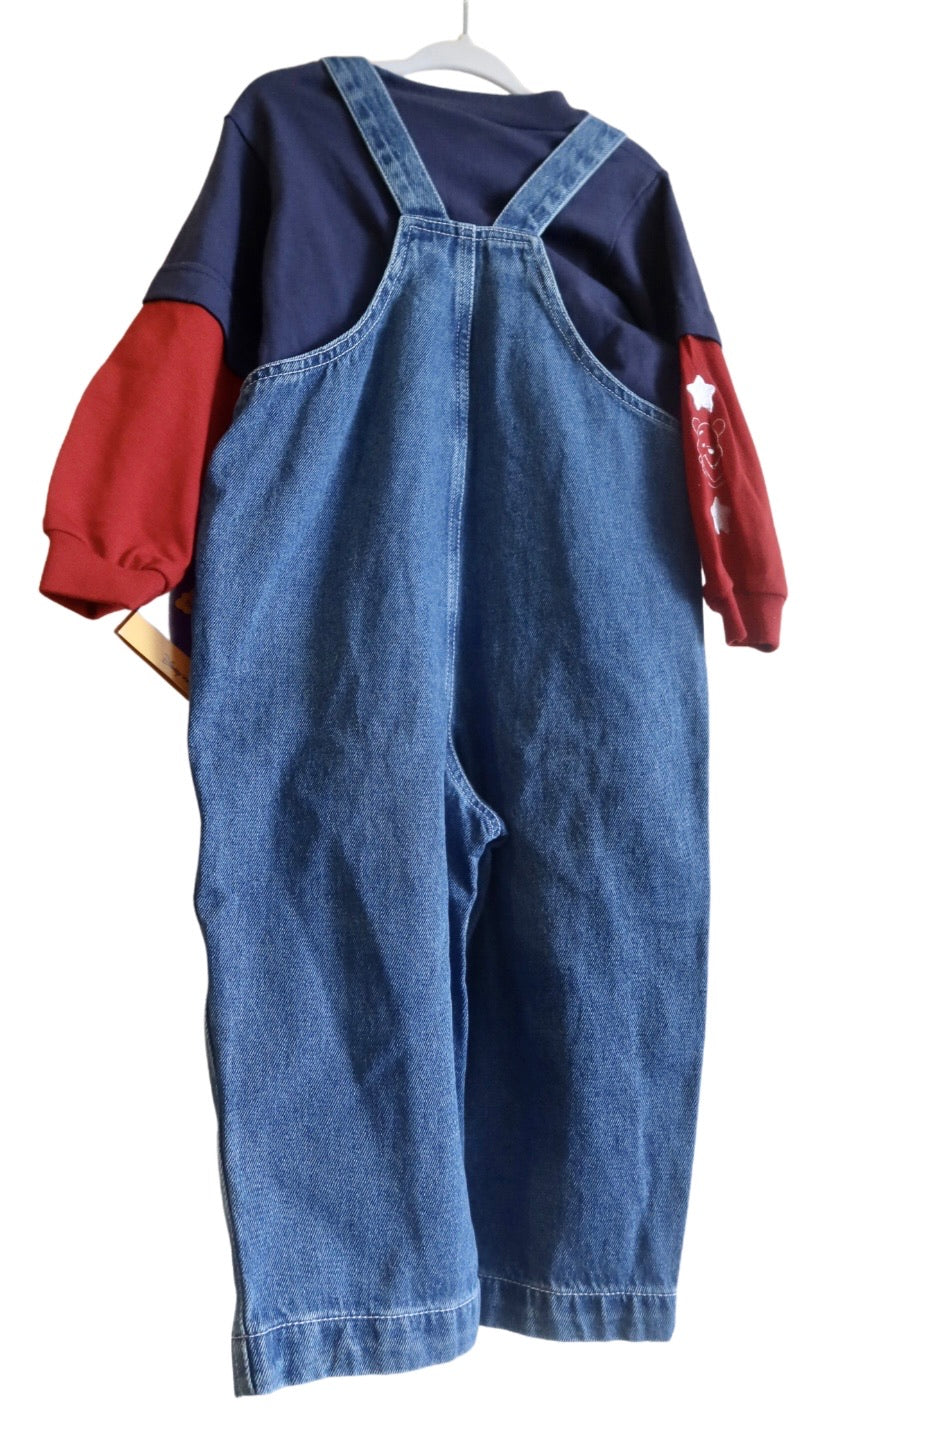 VNTG Pooh overalls